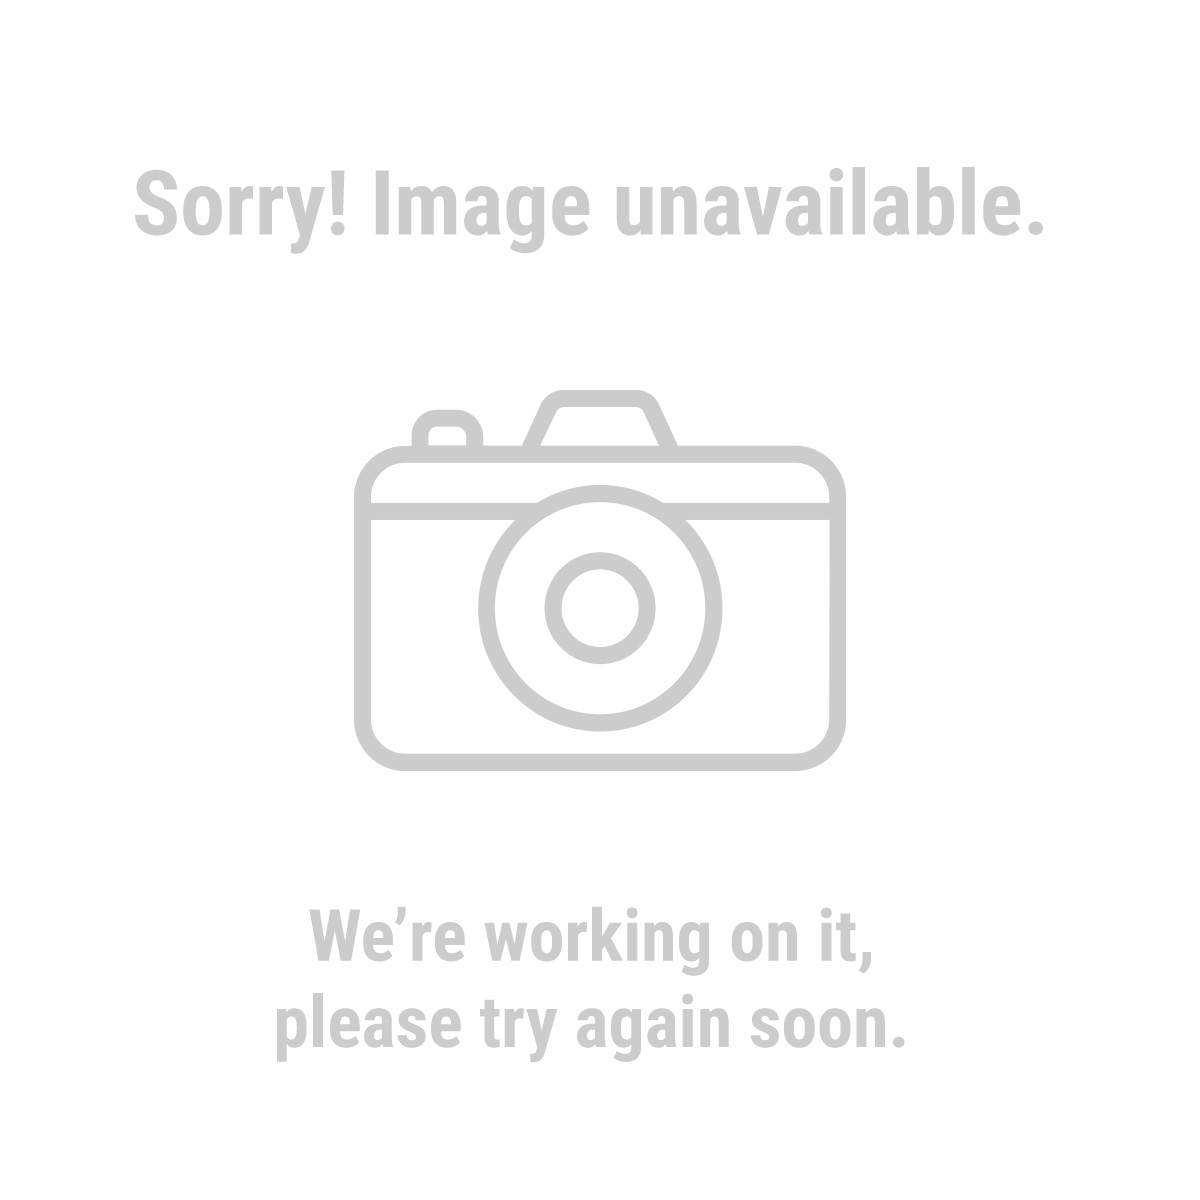 Haul Master Shop 69055 Heavy Duty Portable Scaffold